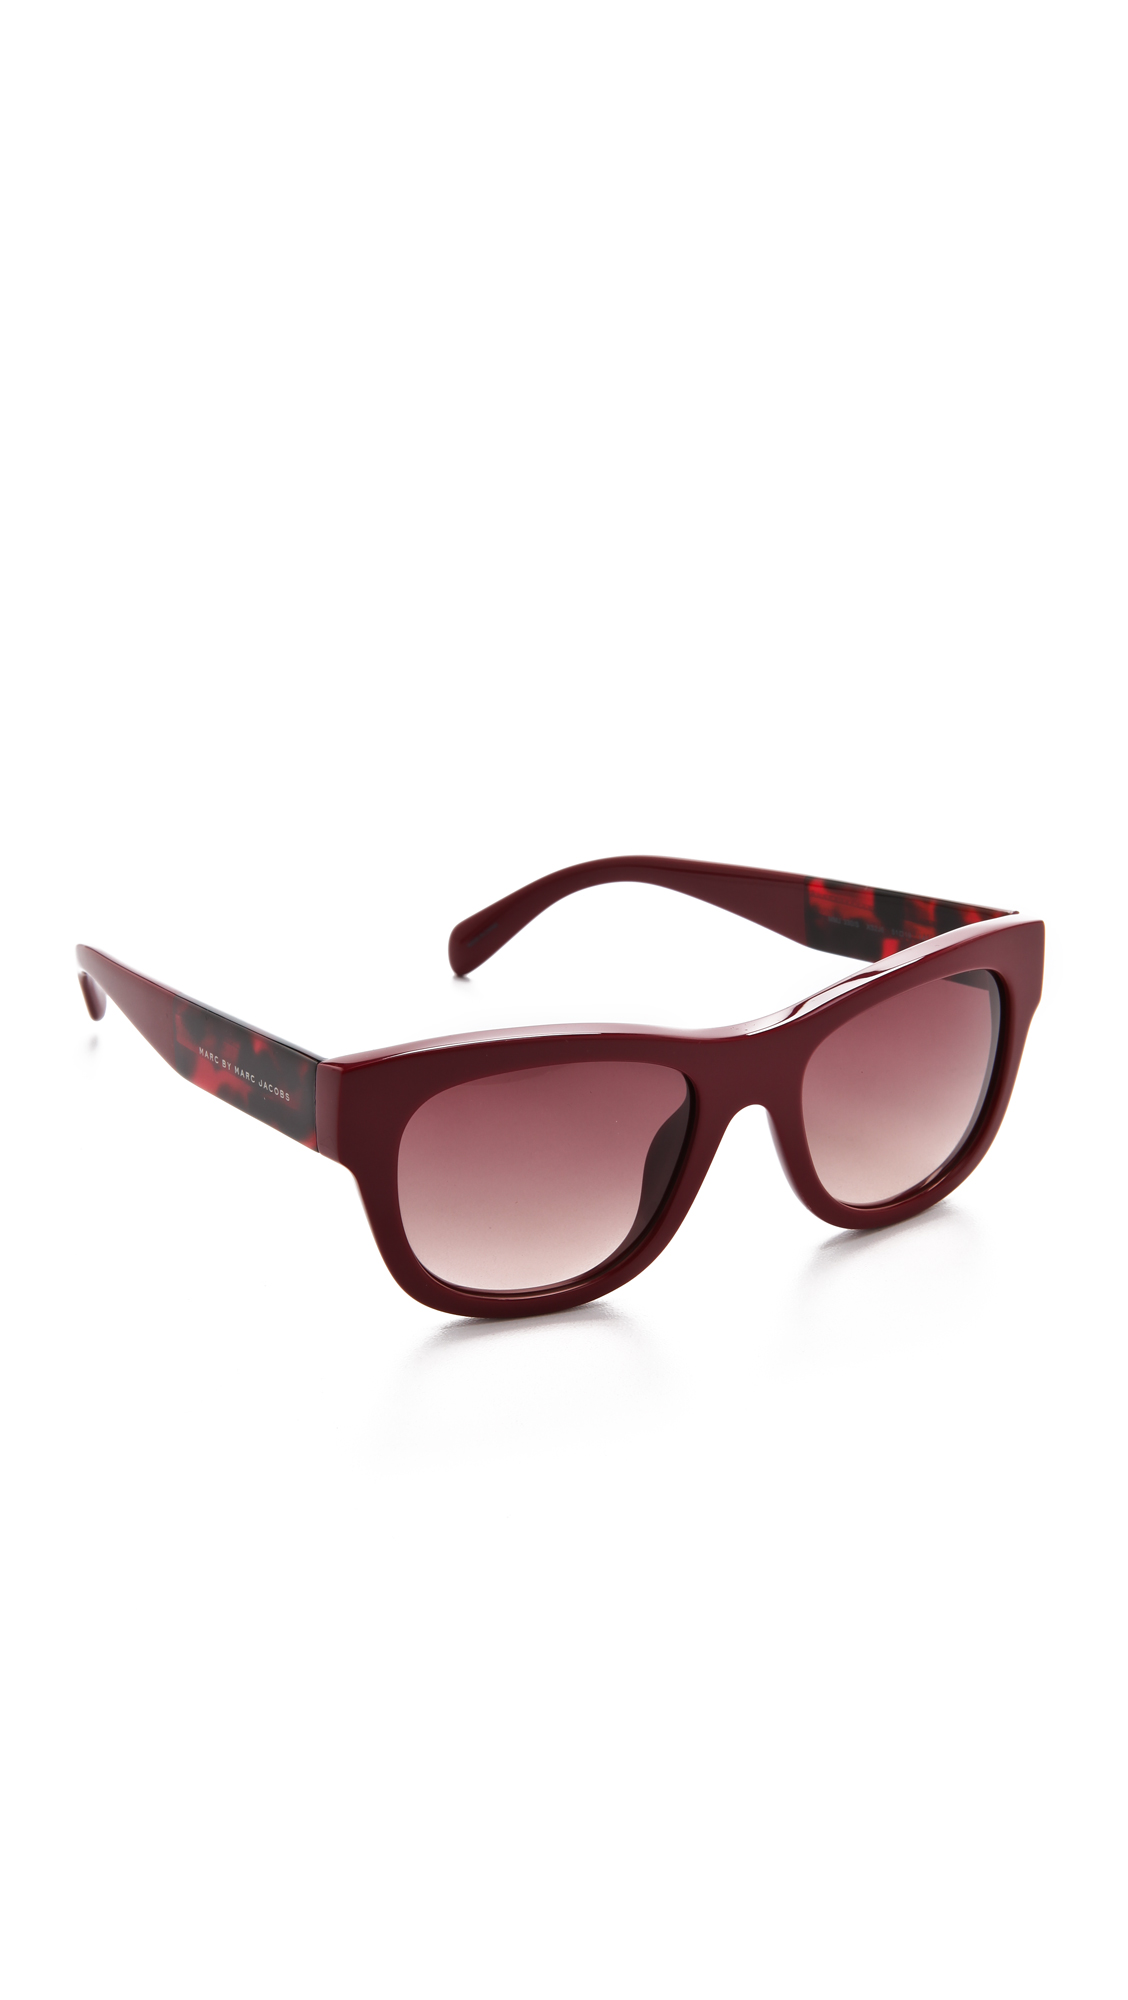 Marc Jacobs Big Frame Glasses : Marc by marc jacobs Thick Frame Sunglasses in Red Lyst